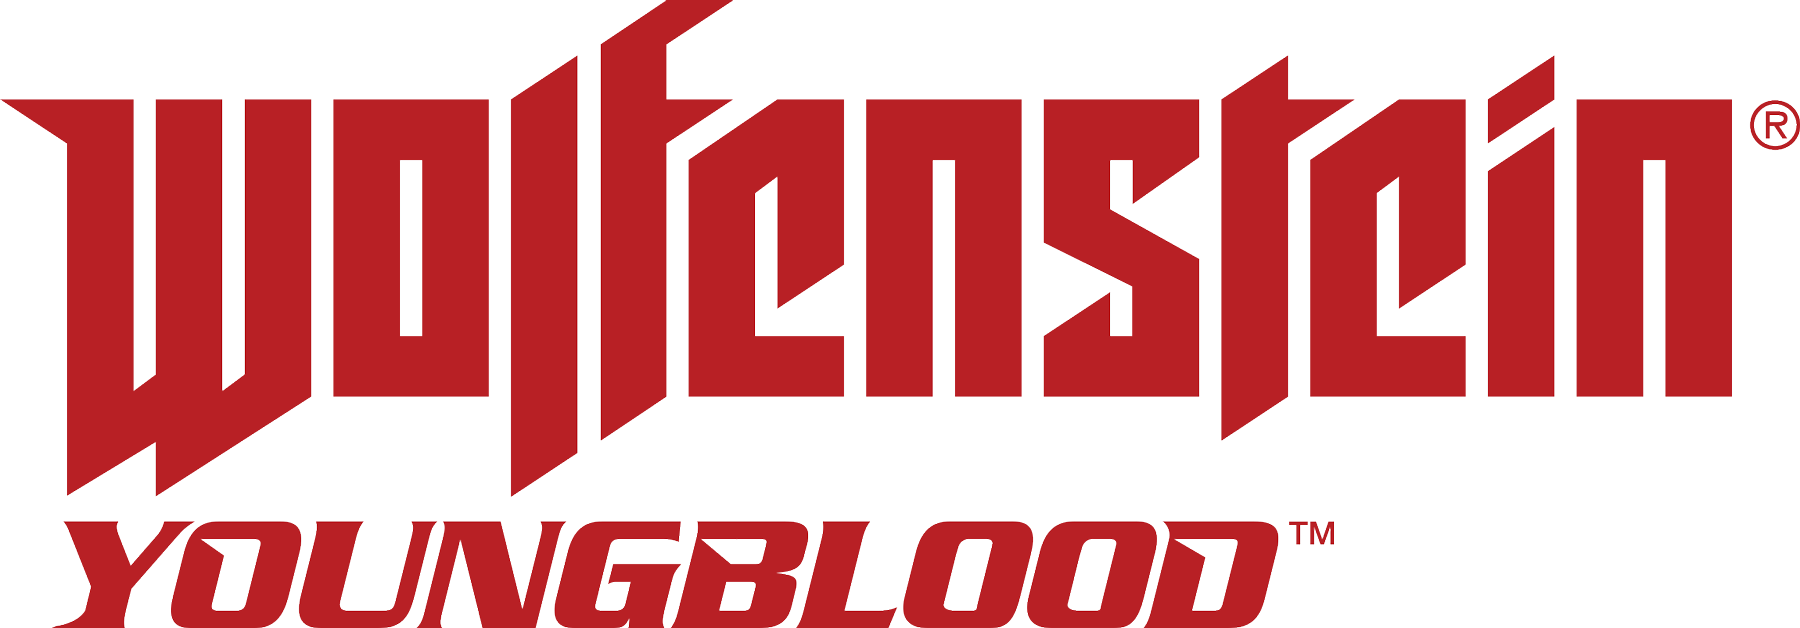 Logotipo de Wolfenstein: Youngblood